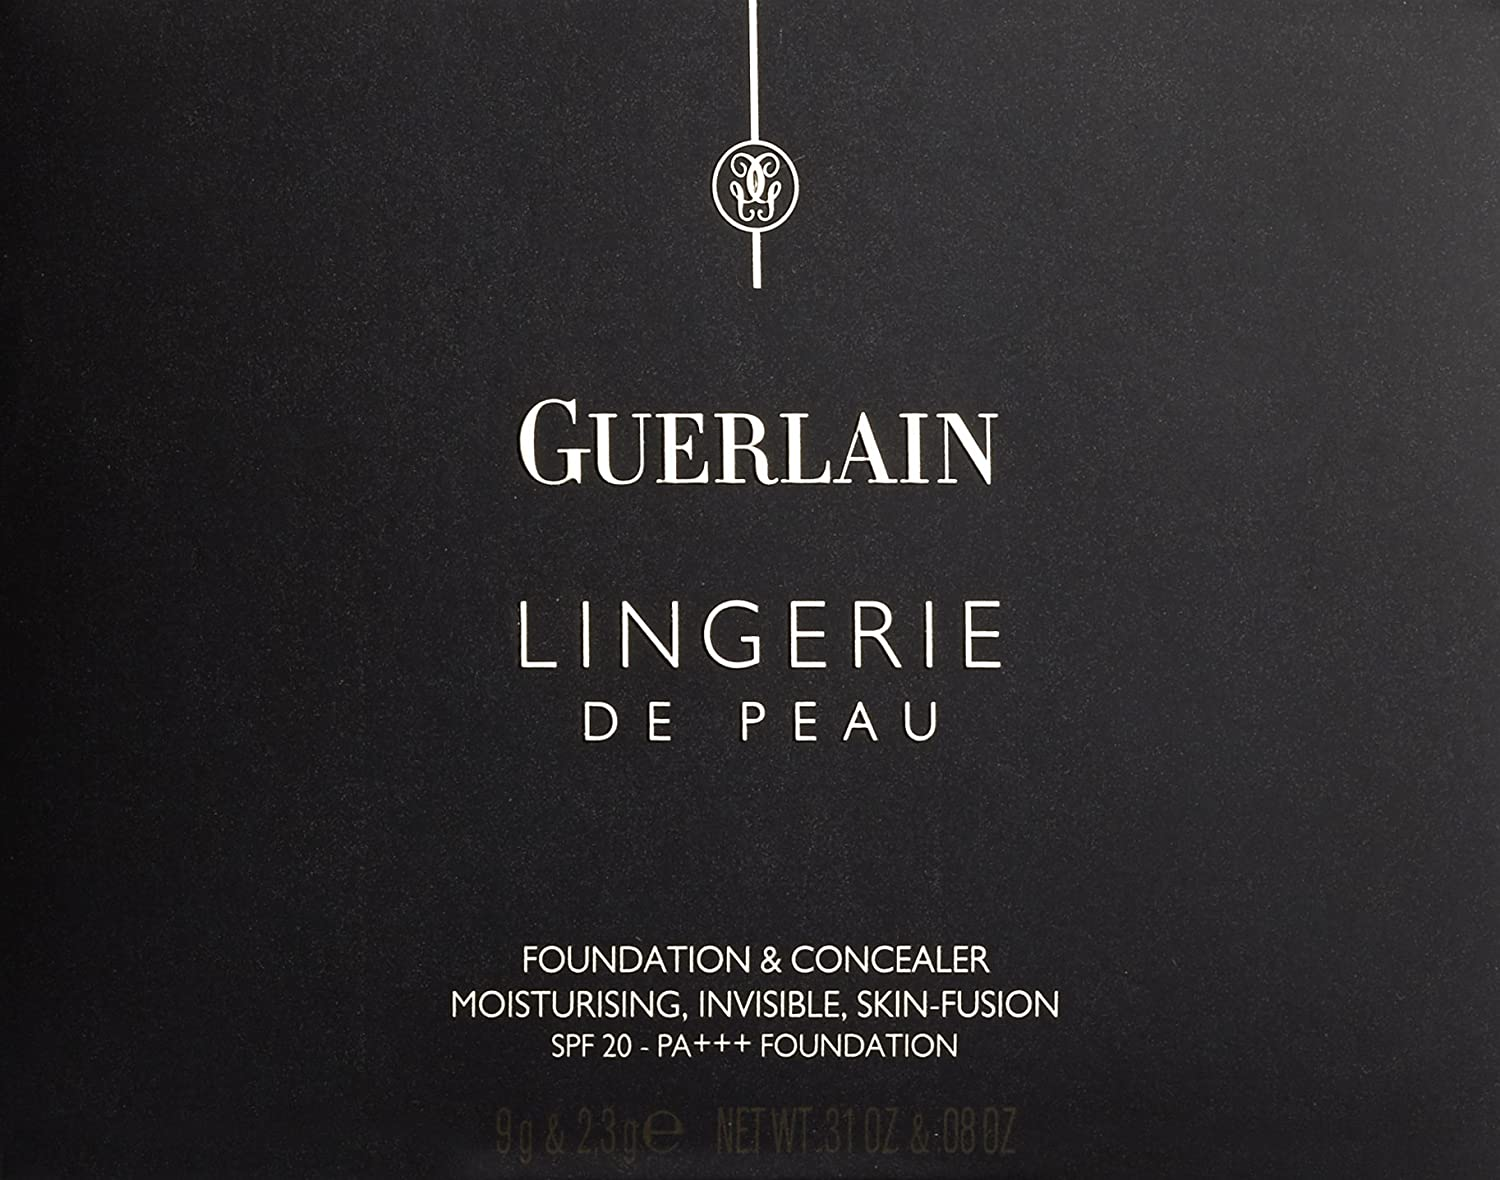 Guerlain Lingerie de Peau Foundation SPF 20 for Women, 03 Beige Naturel, 0.39 Ounce